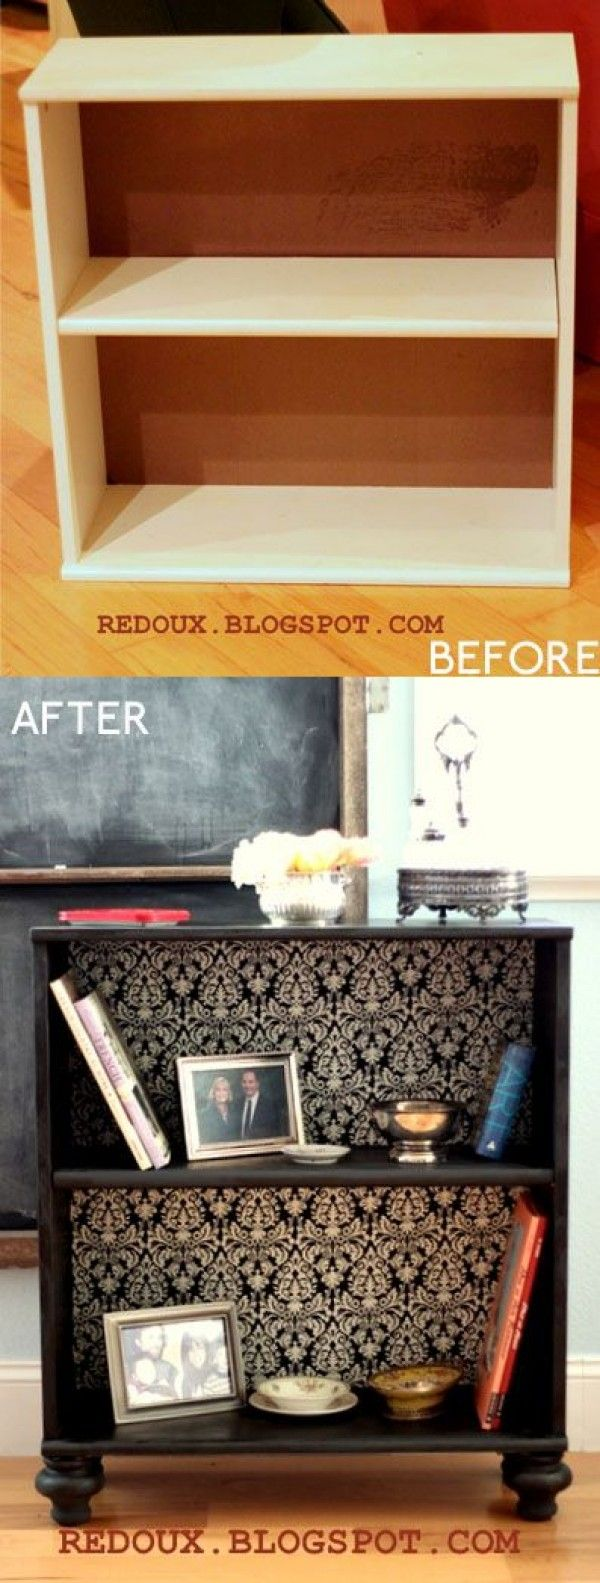 Photo of 22 Amazing DIY Bookshelf Ideas with Plans You Can Make Easily